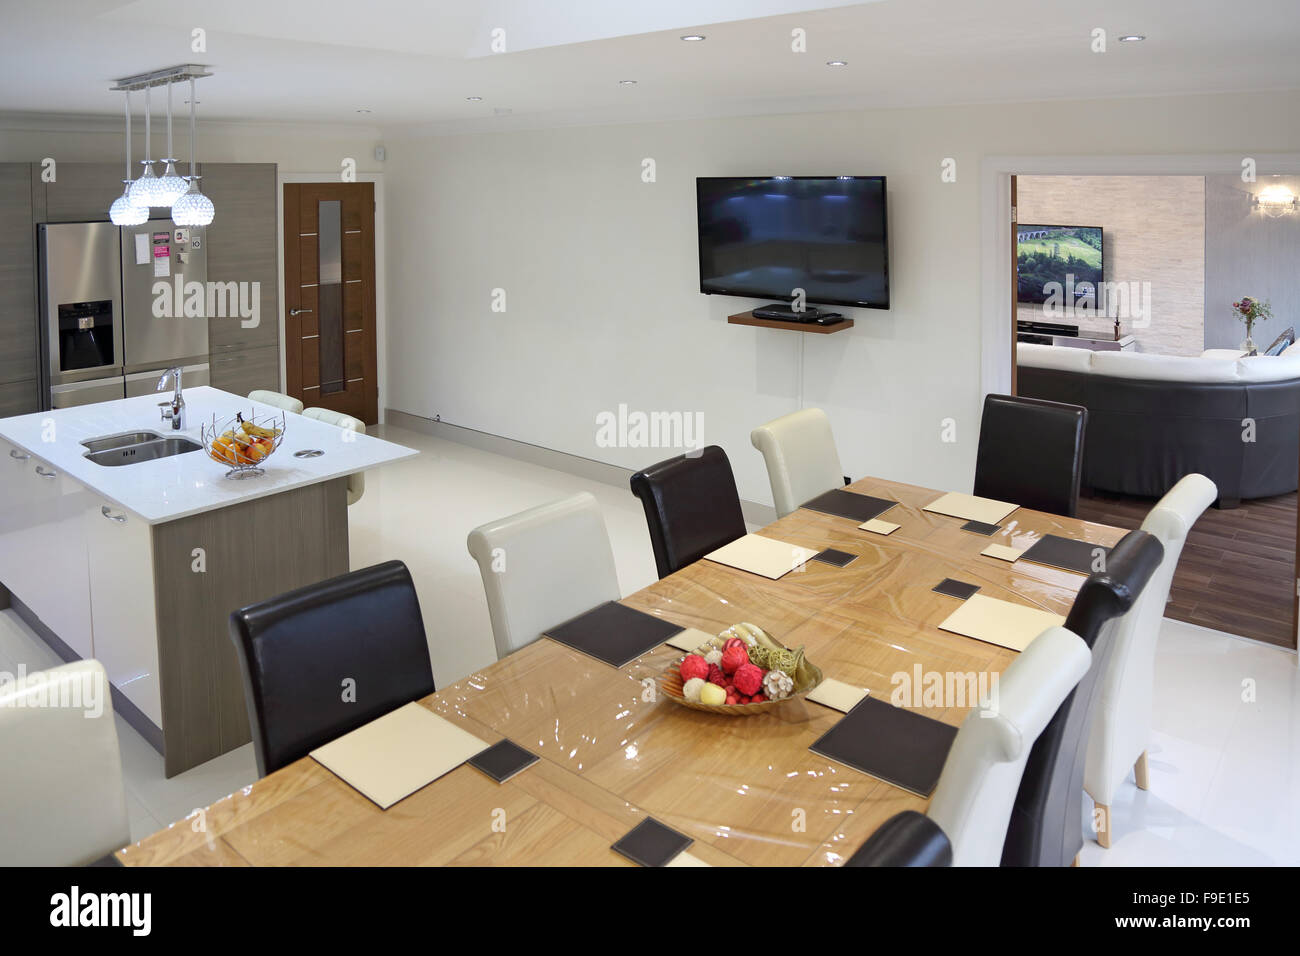 Kitchen dining room in a newly refurbished house showing living